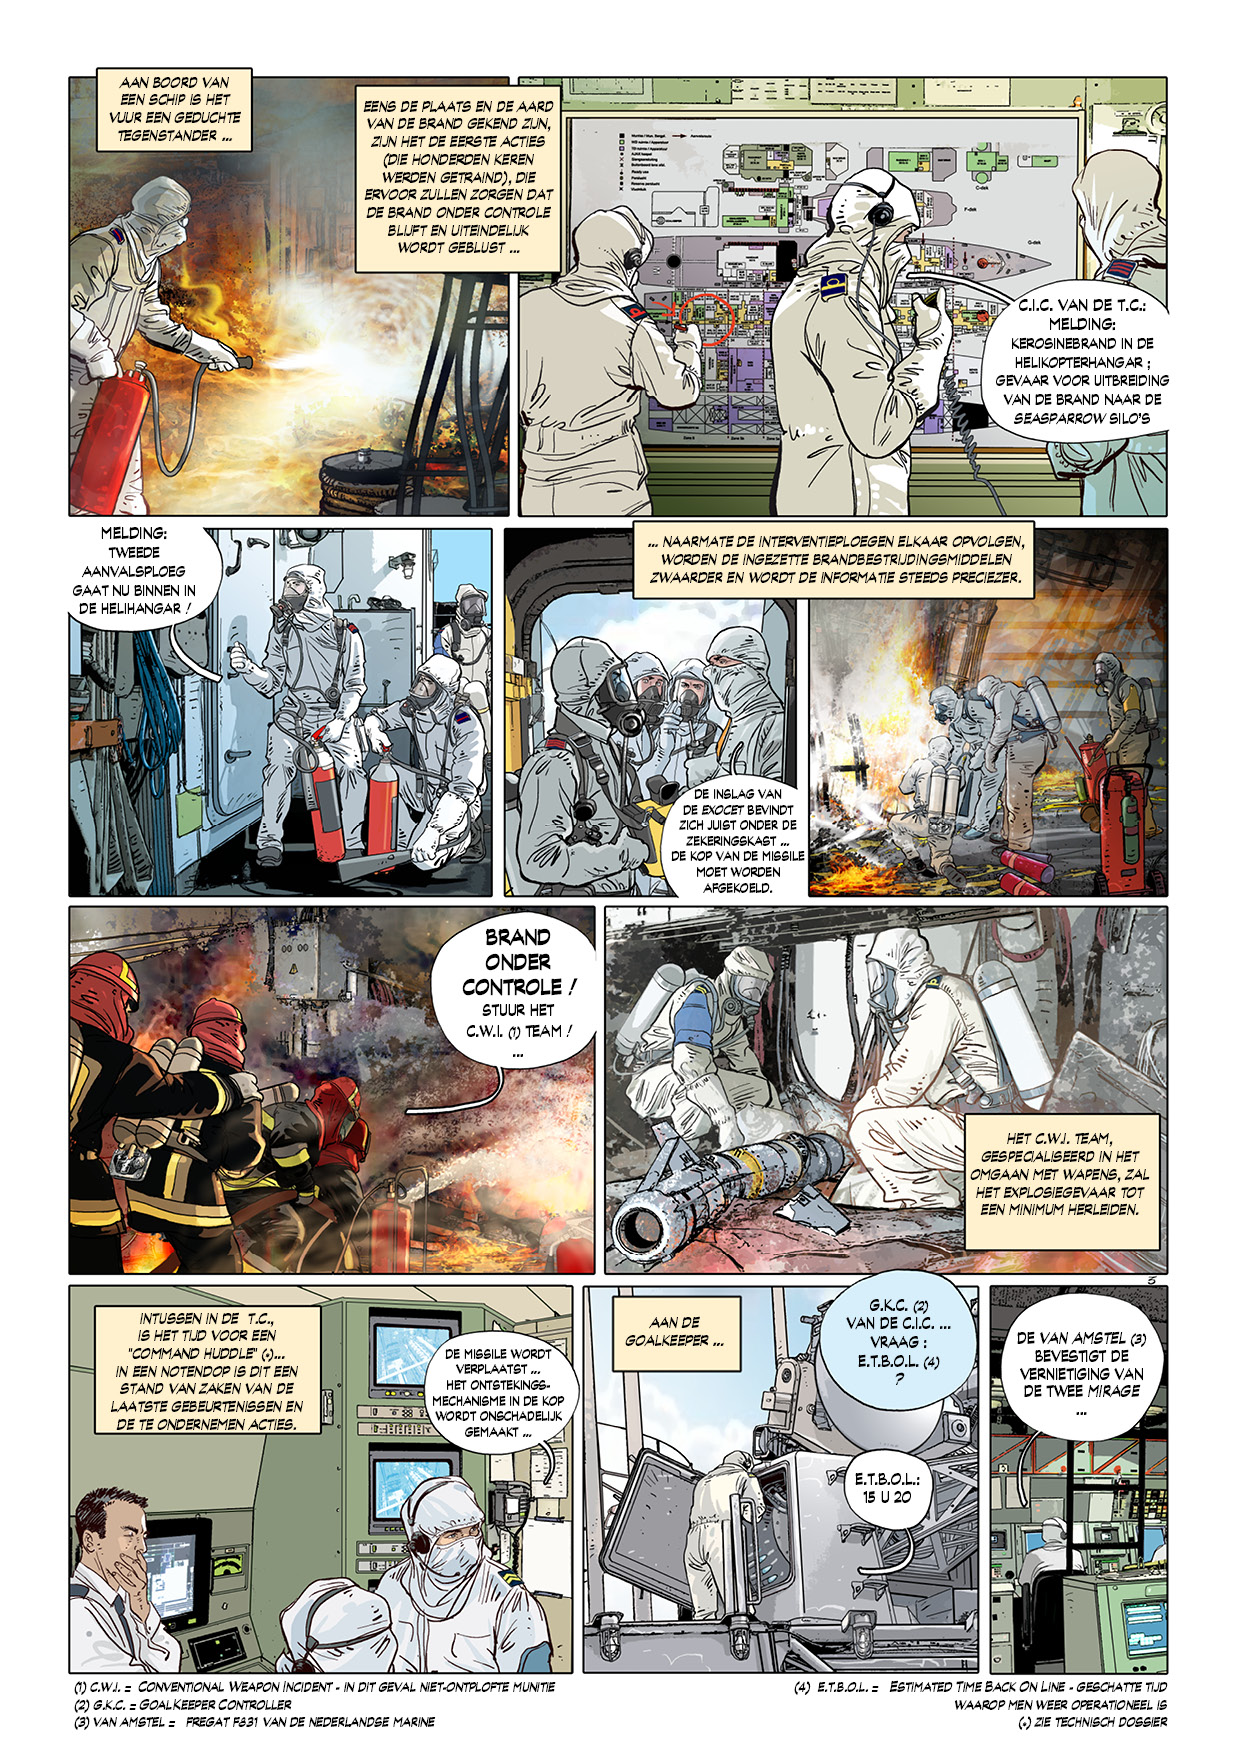 SARC-6 NL - Page 7 - Stripverhaal